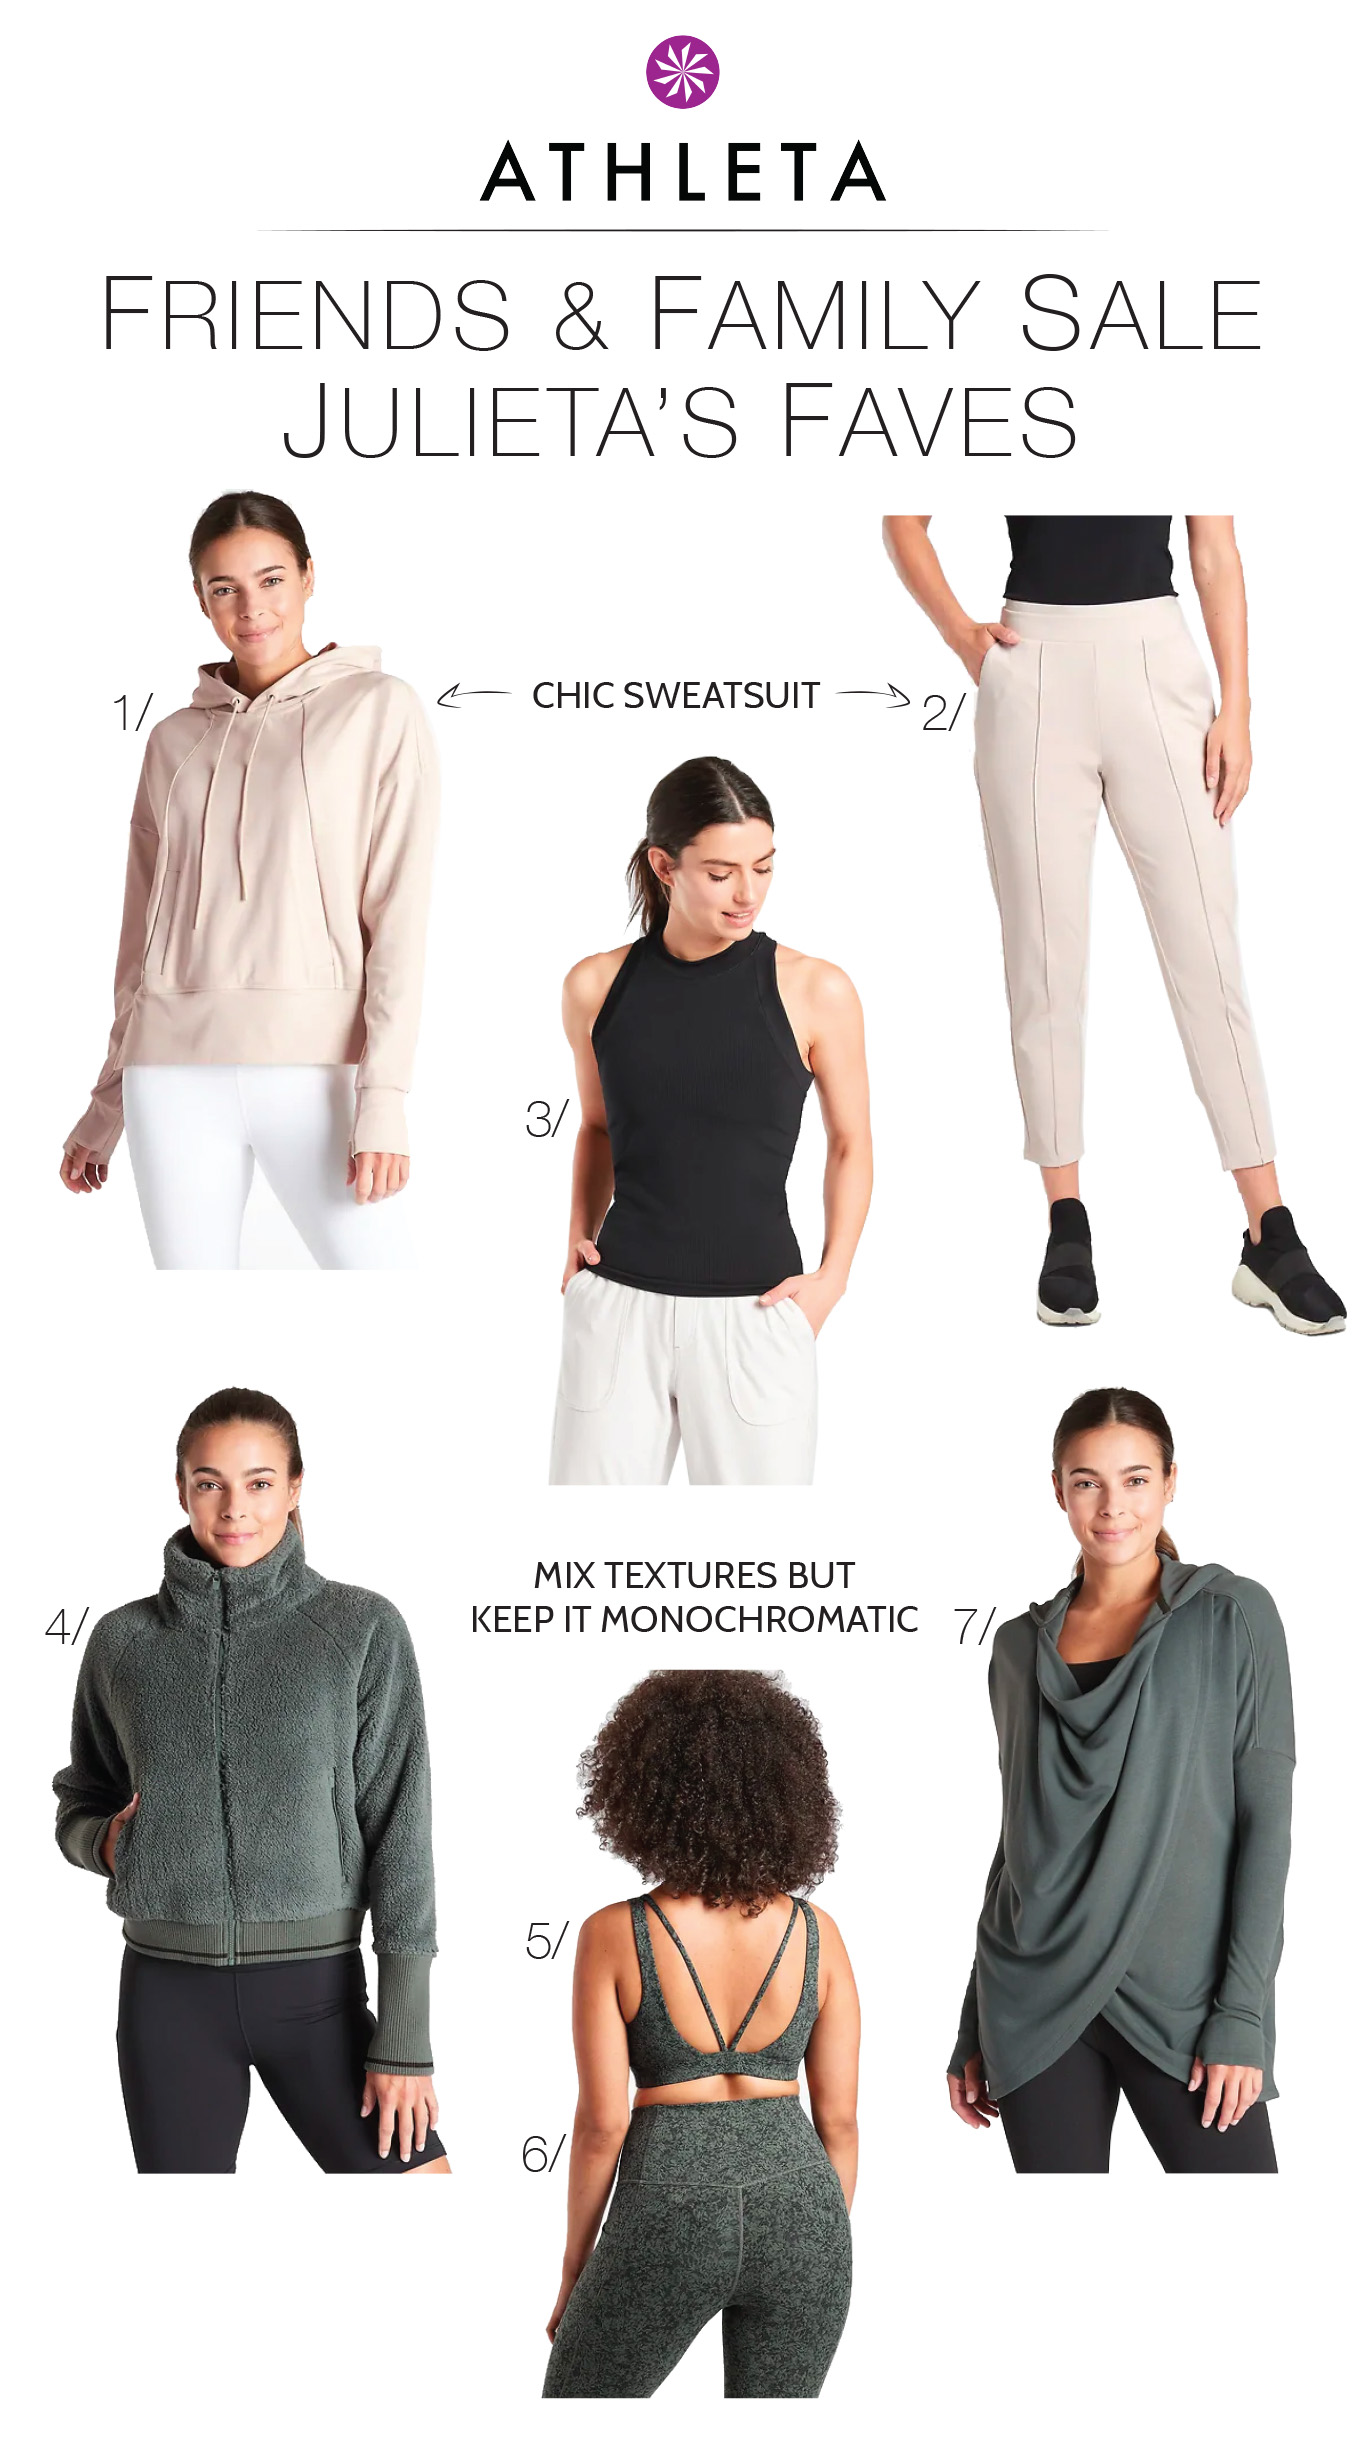 The Mom Edit LOVES Athleta. Super-functional activewear + cute styles & comfy fits -- sustainable & plus-size options, too. A loungewear win.